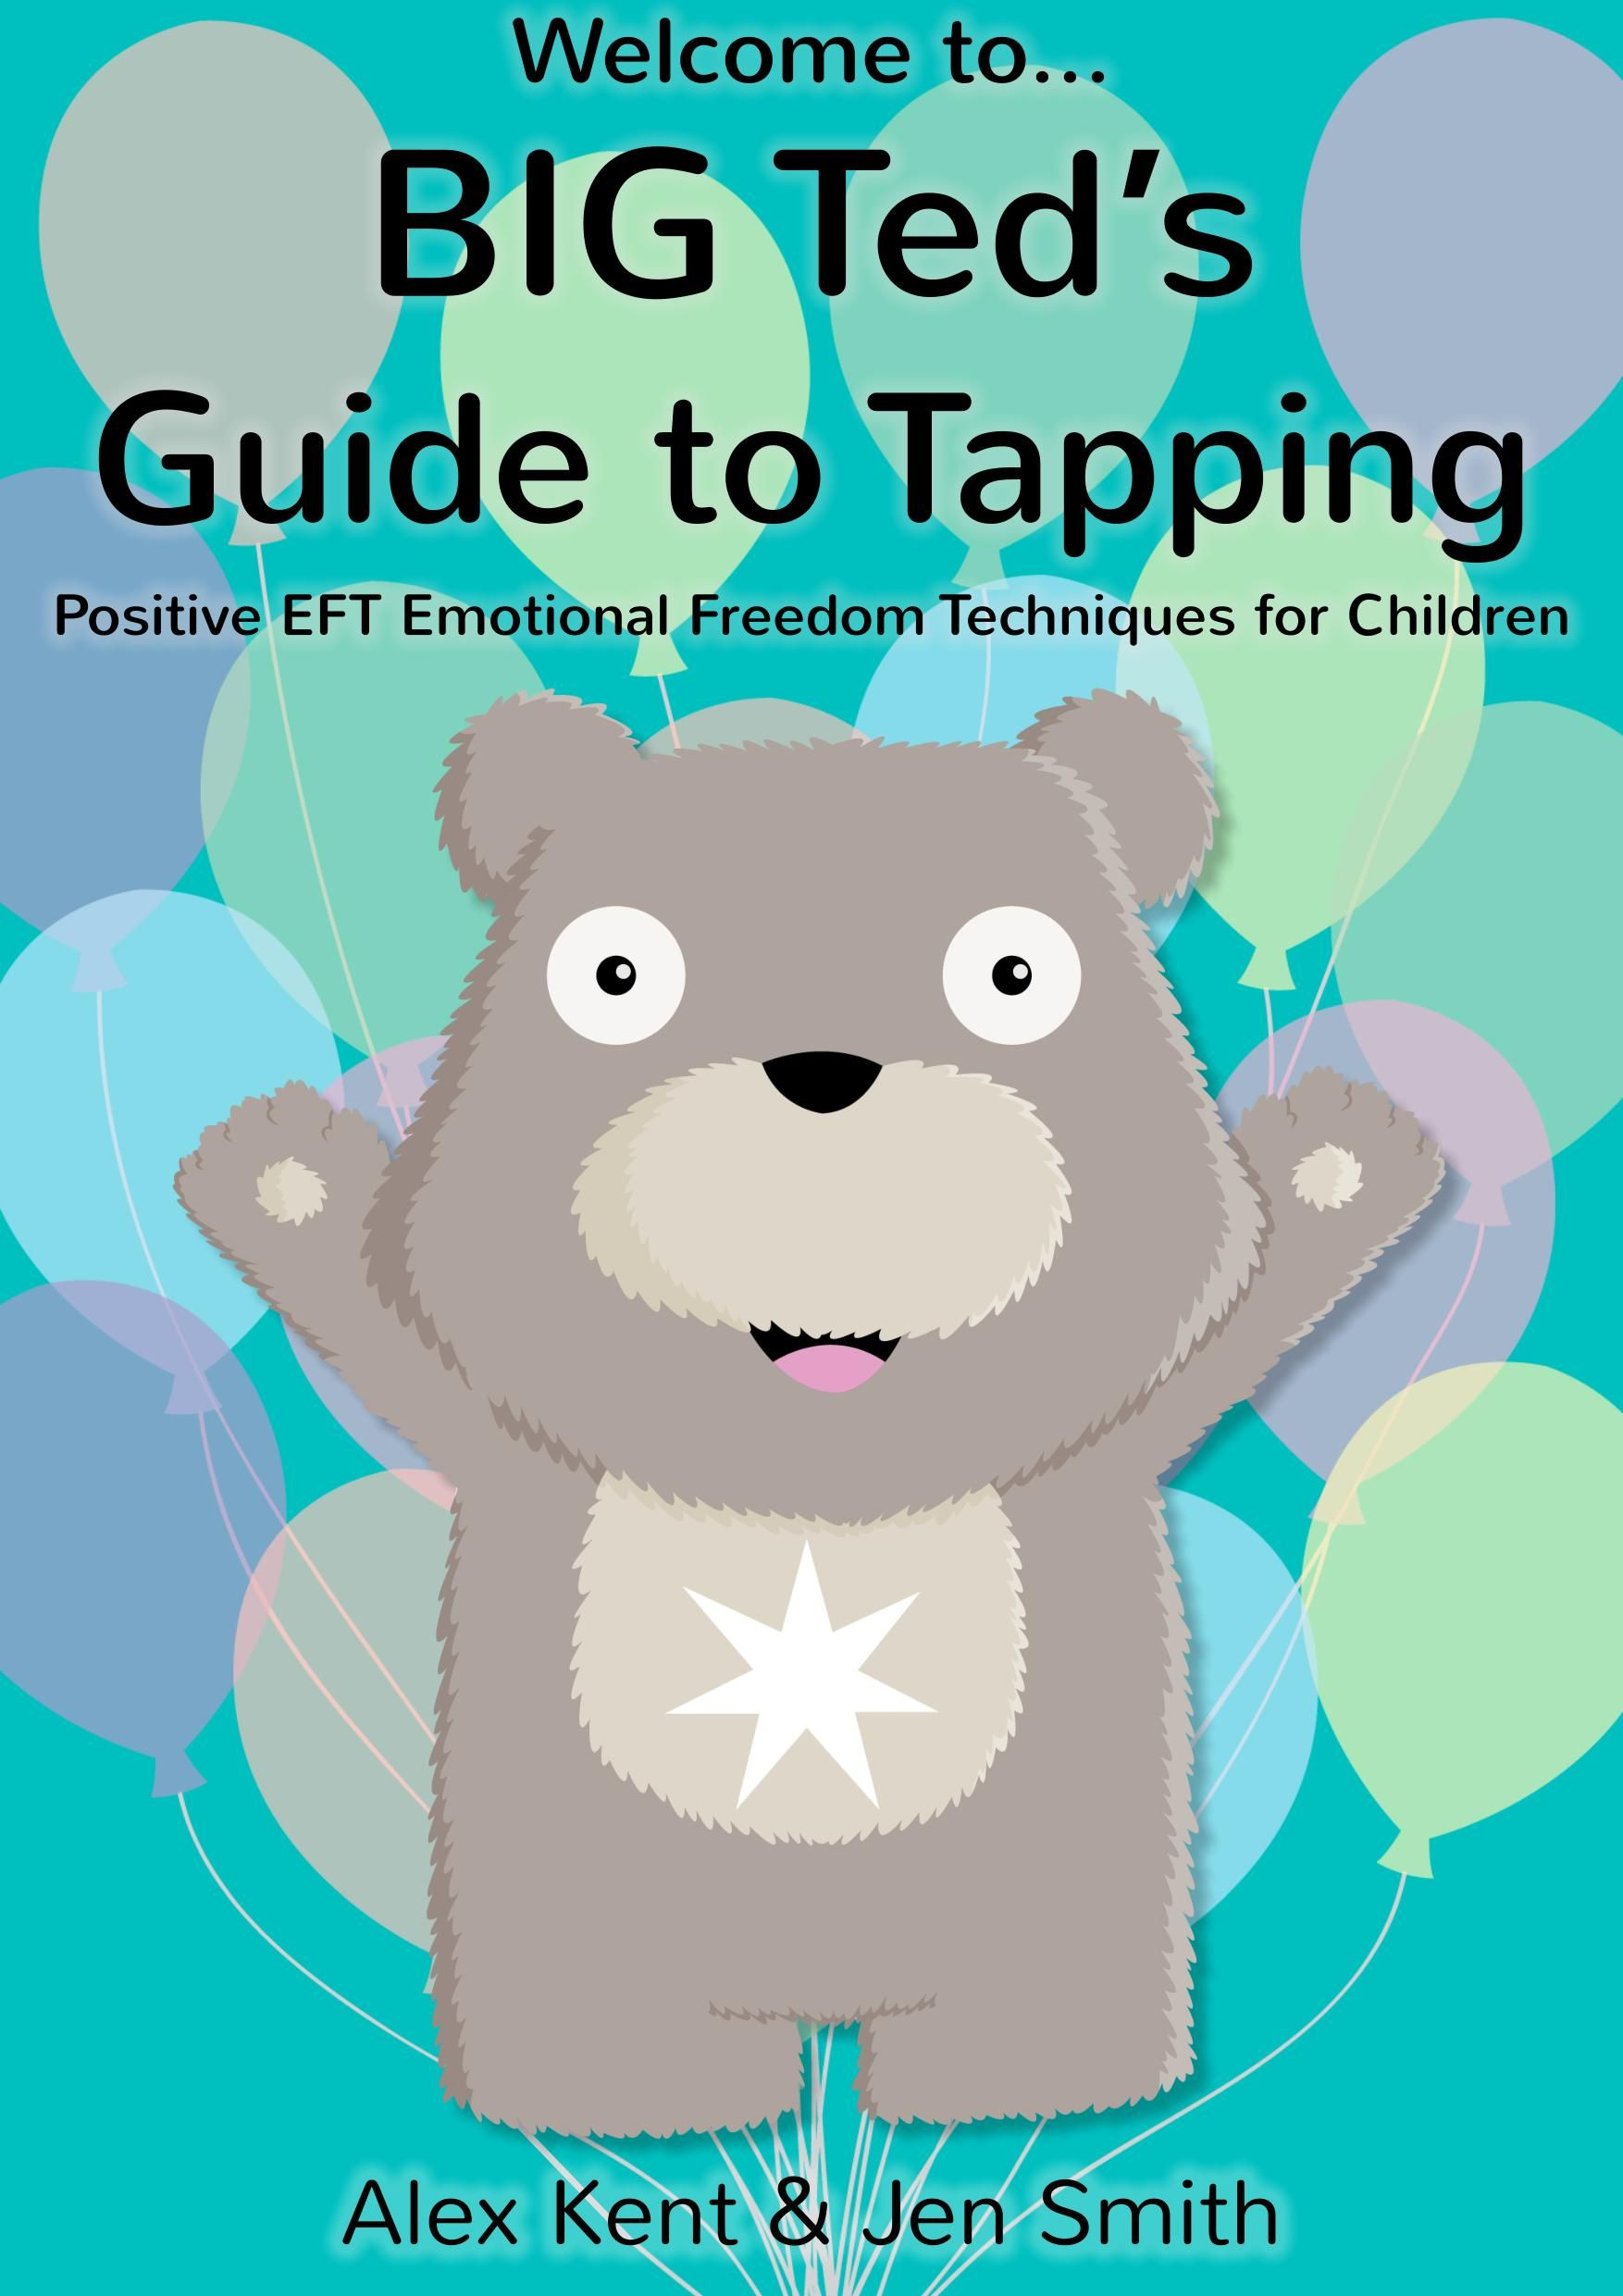 Eft is  great tool for classroom use help kids relax at school check it out also rh pinterest